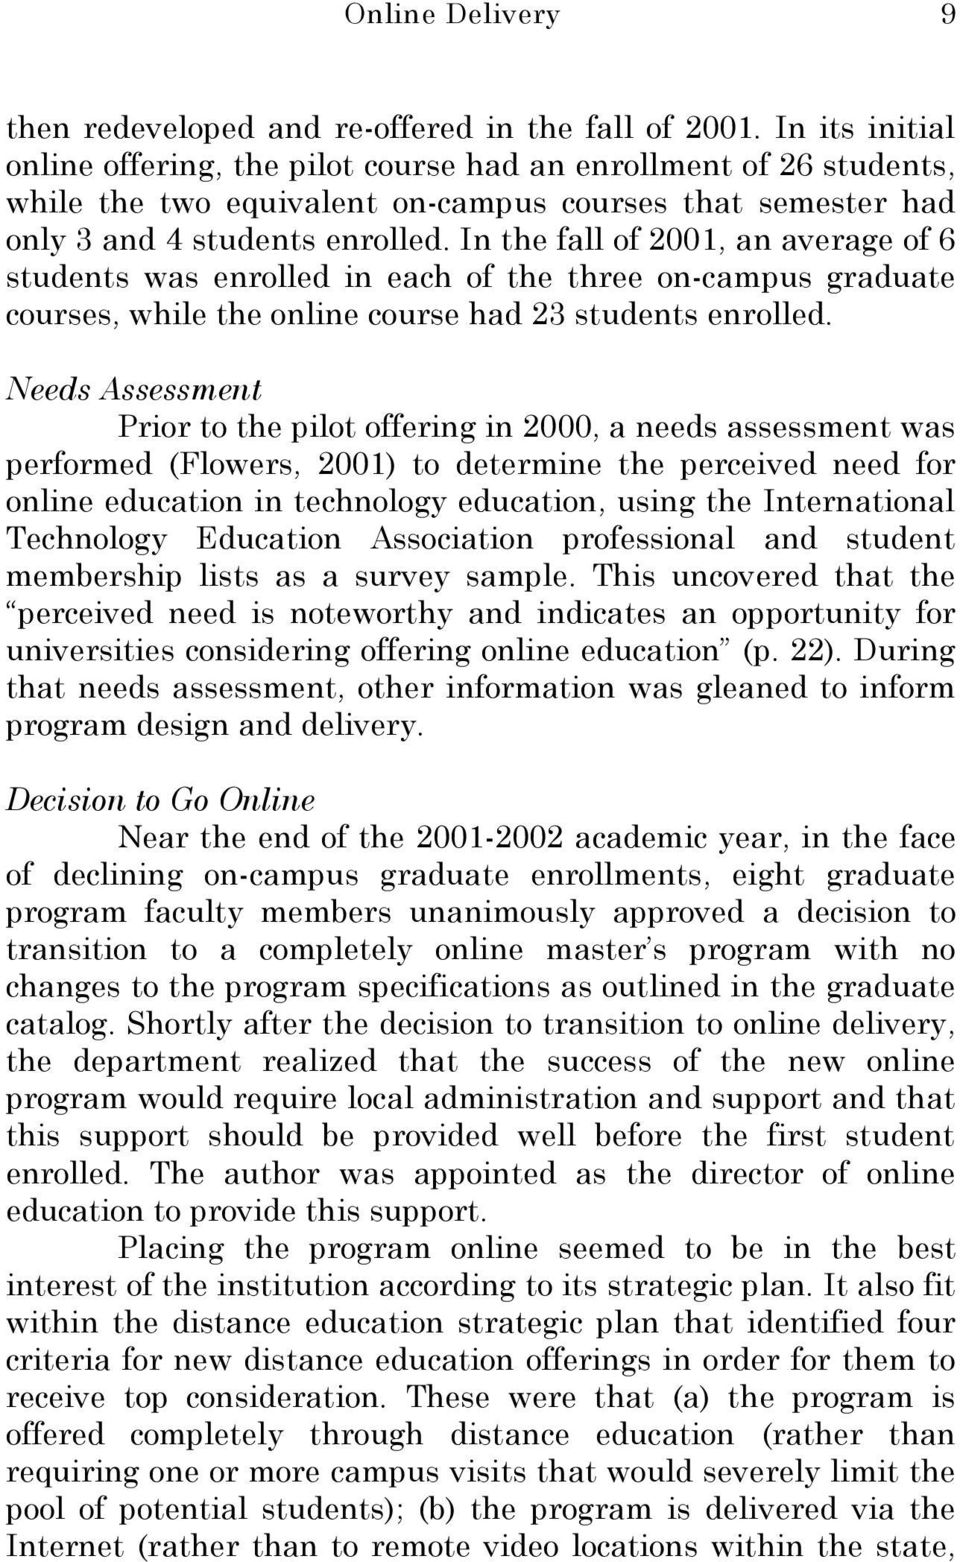 In the fall of 2001, an average of 6 students was enrolled in each of the three on-campus graduate courses, while the online course had 23 students enrolled.